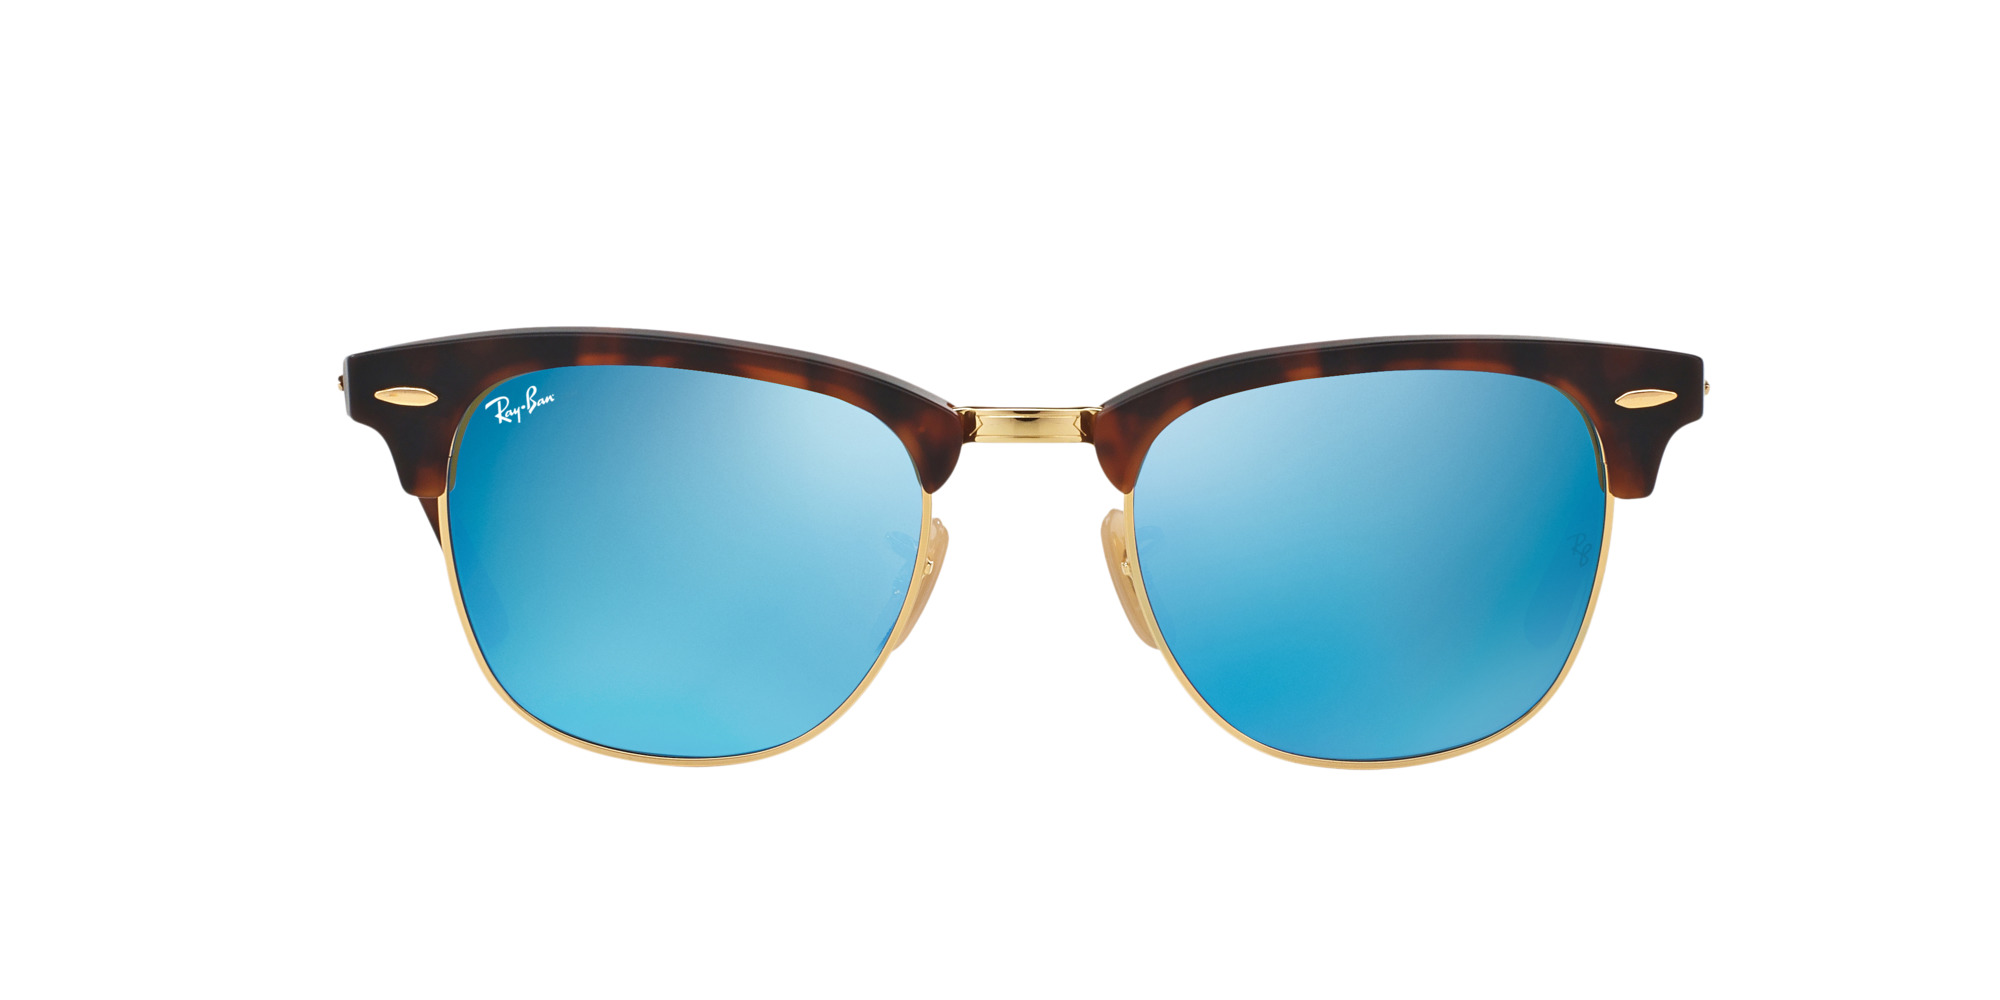 RAY-BAN CLUBMASTER RB 3016 114517 51mm.-360